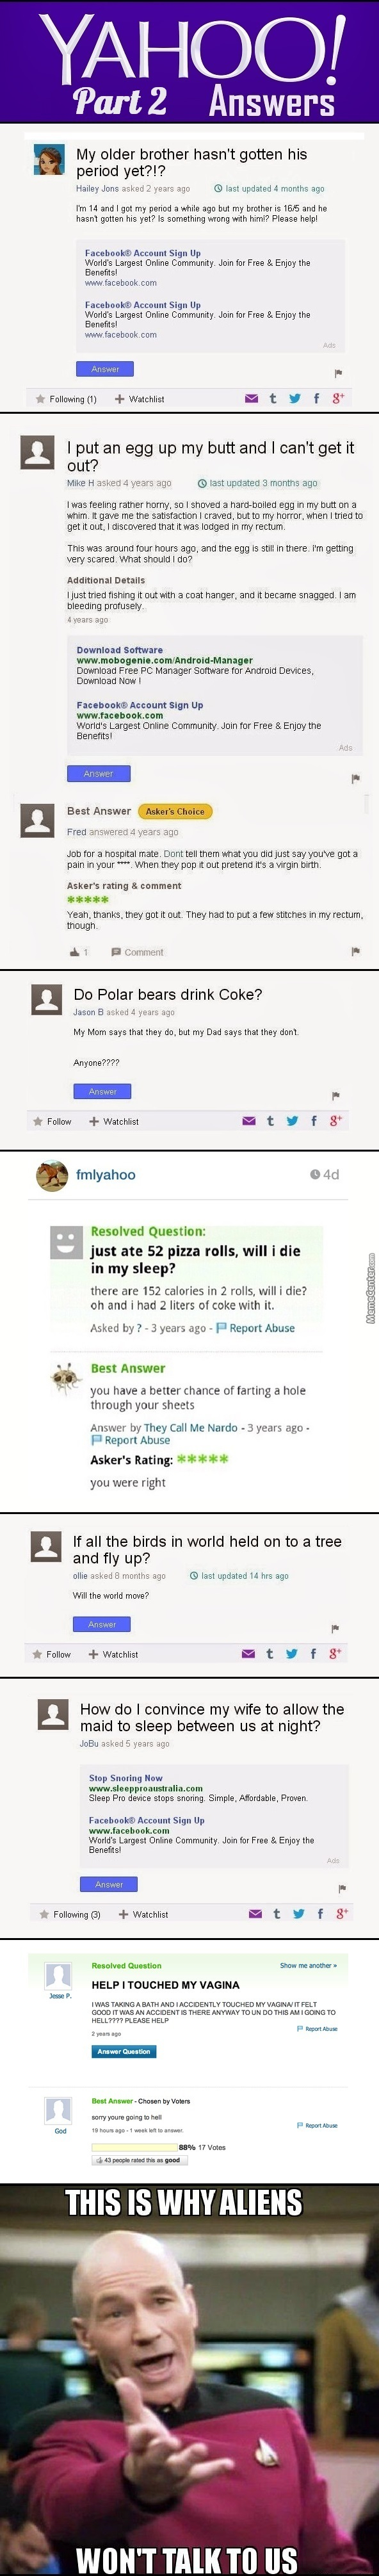 Yahoo Answers Part 2